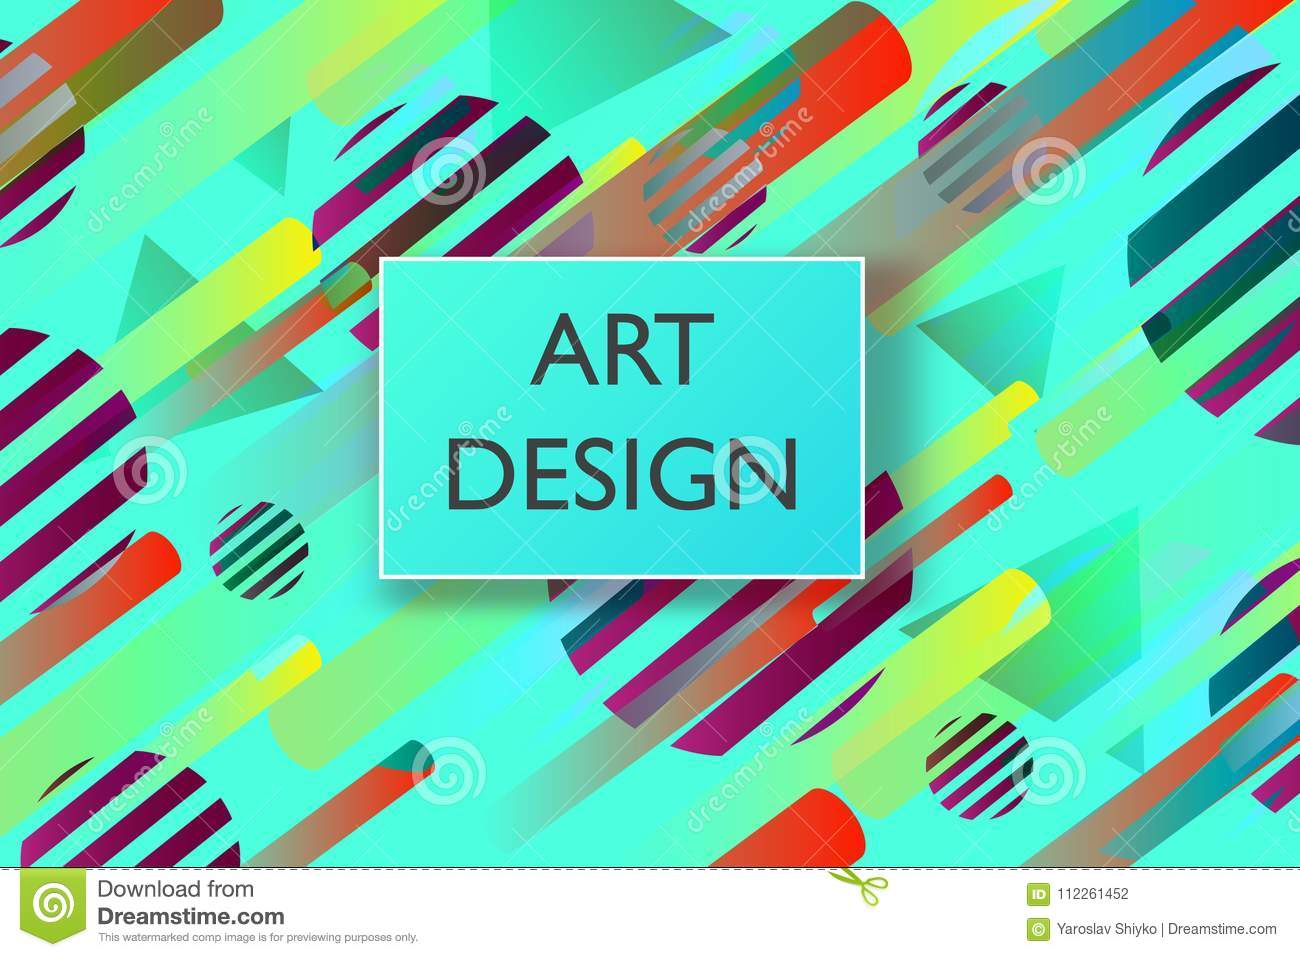 Abstract colorful playful banner background with fun texture design element. Vector illustration